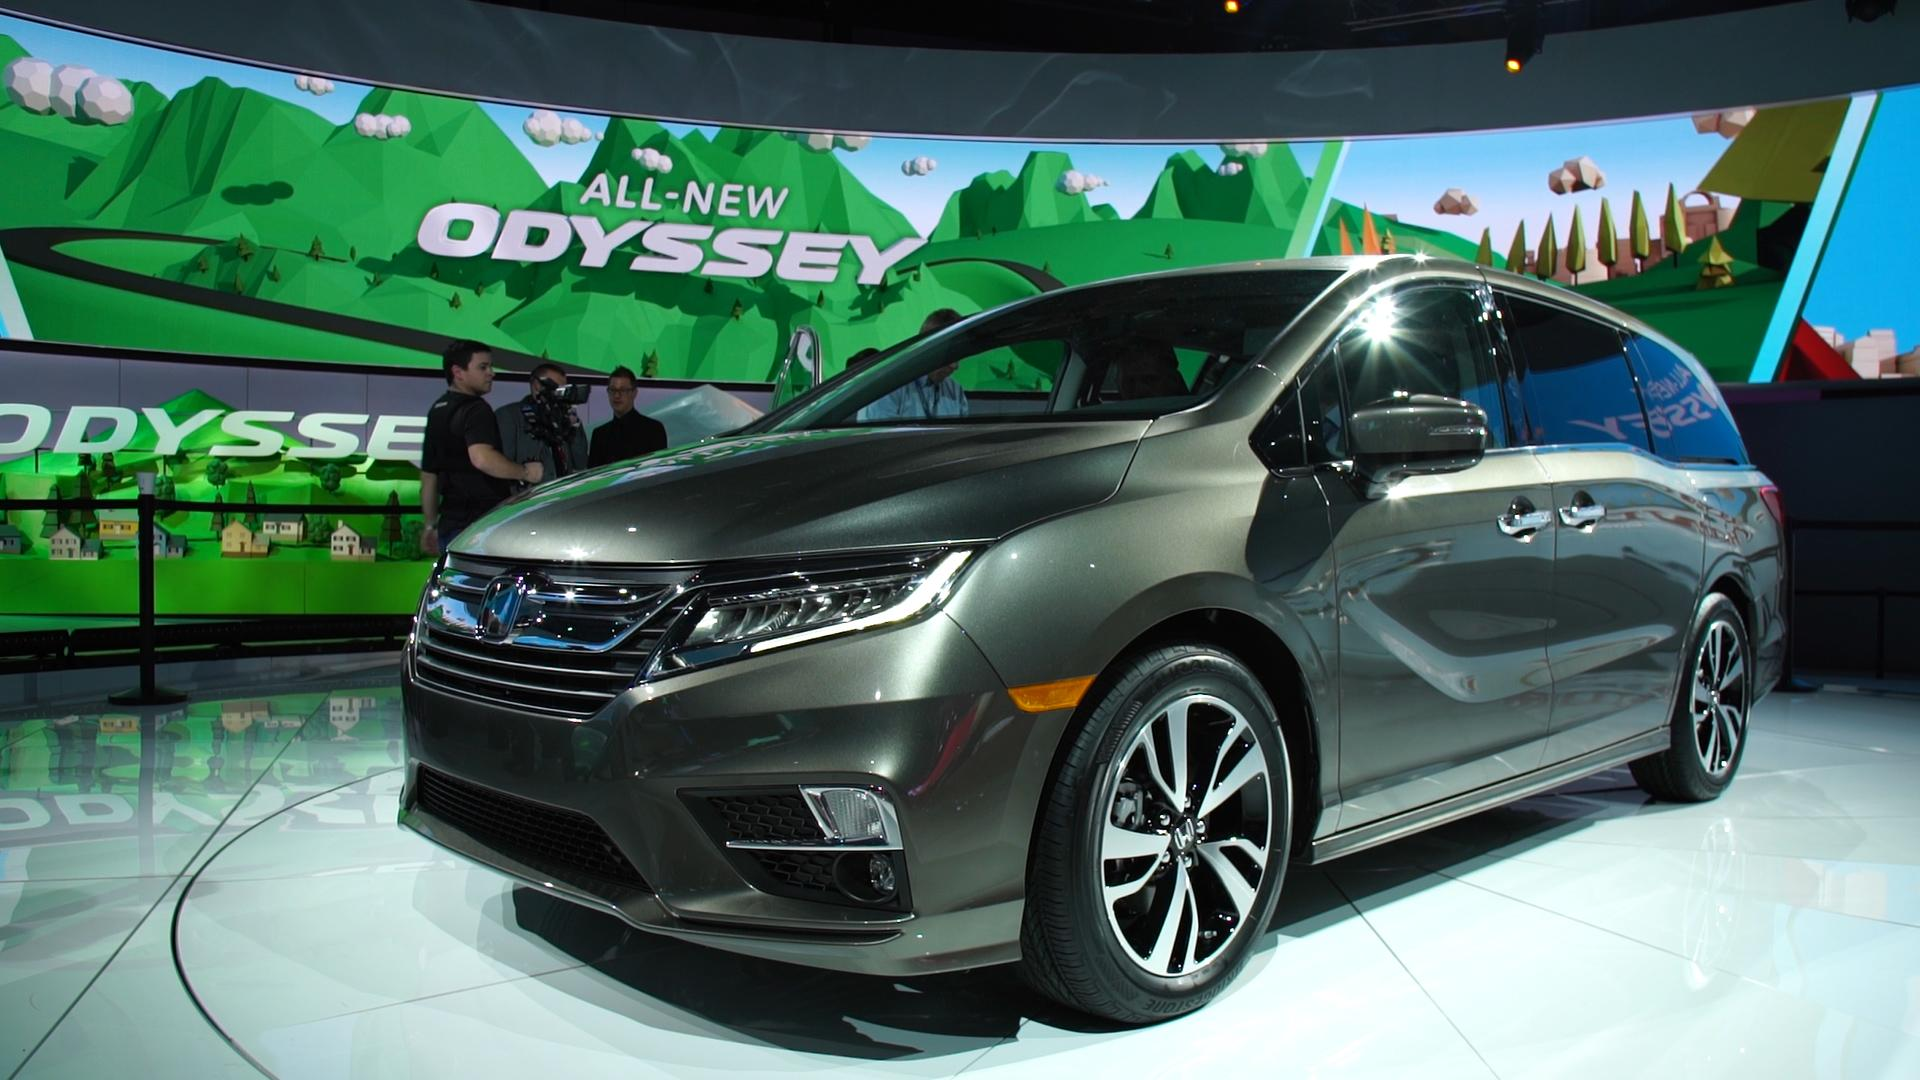 Used Chevy Traverse >> All-New 2018 Honda Odyssey Offers High Tech - Consumer Reports